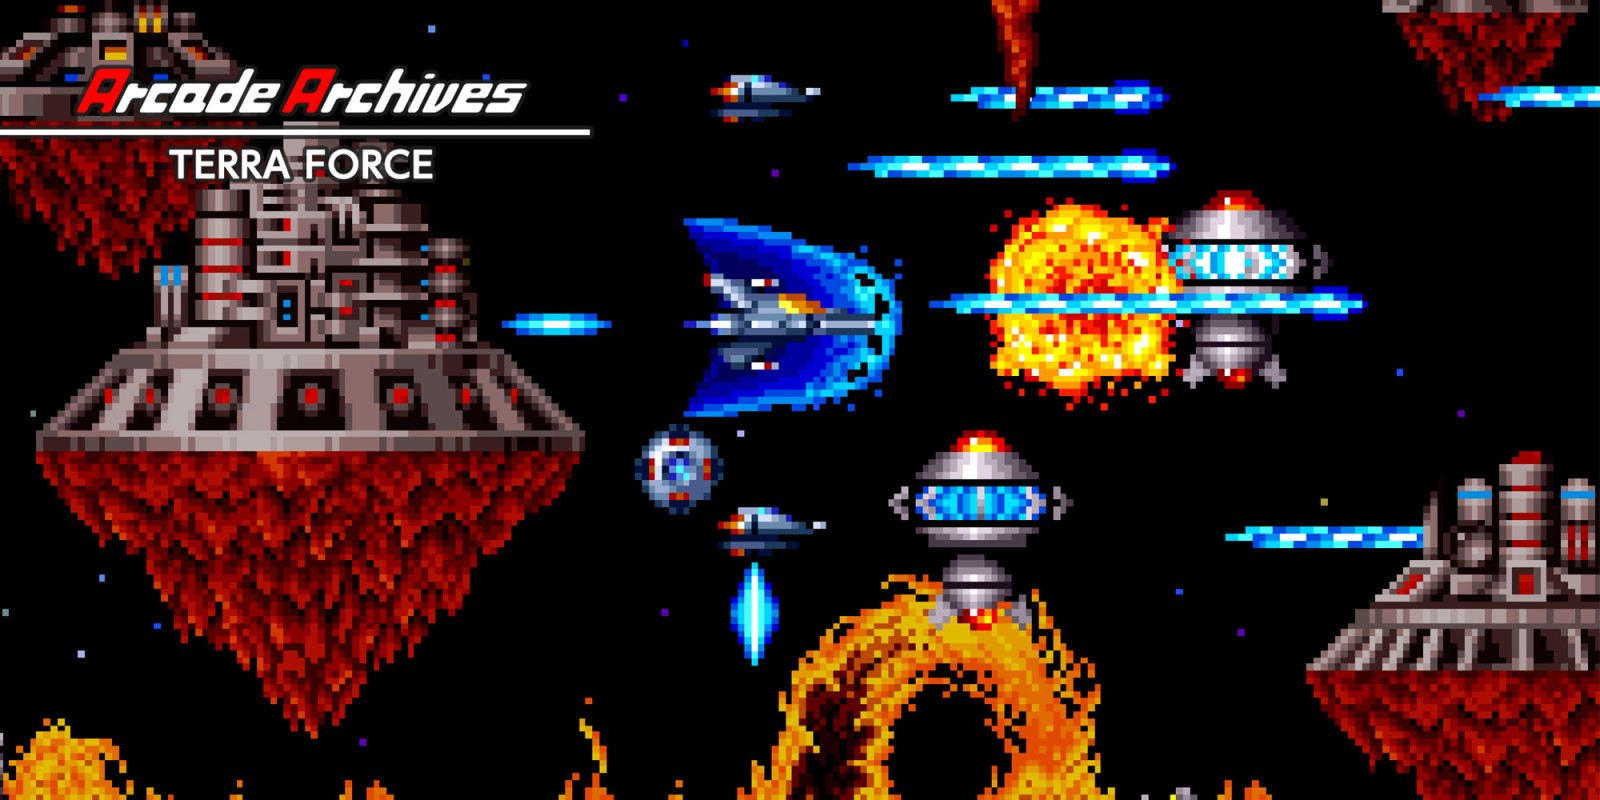 Arcade Archives TERRA FORCE